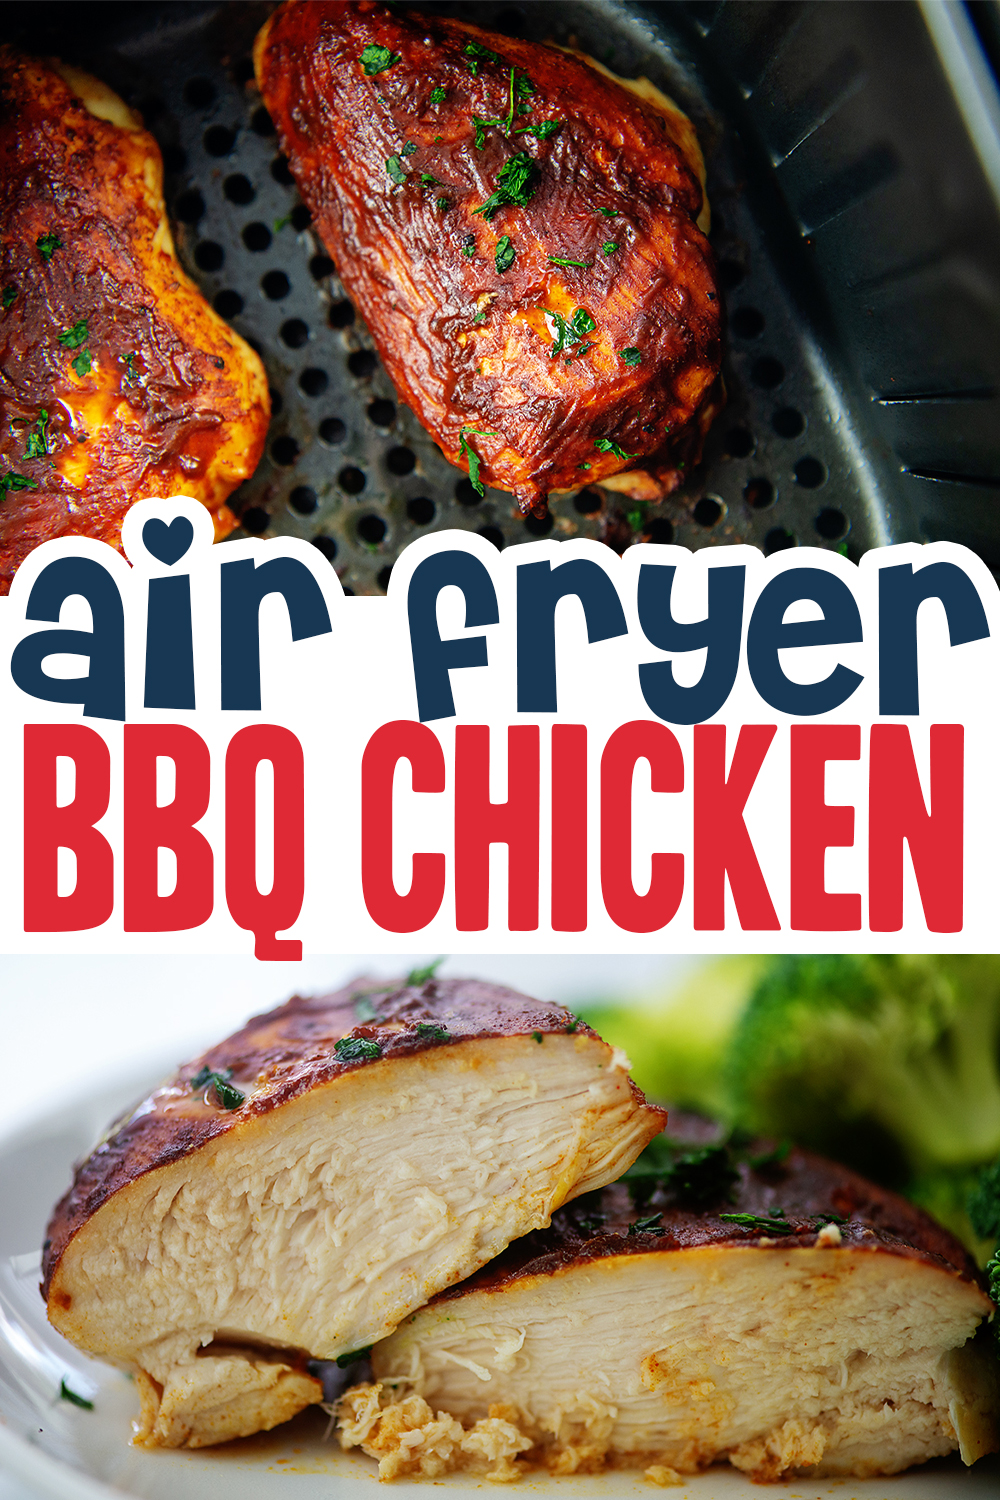 This bbq chicken turned out great from our air fryer.  Try out this recipe for an easy midweek dinner.